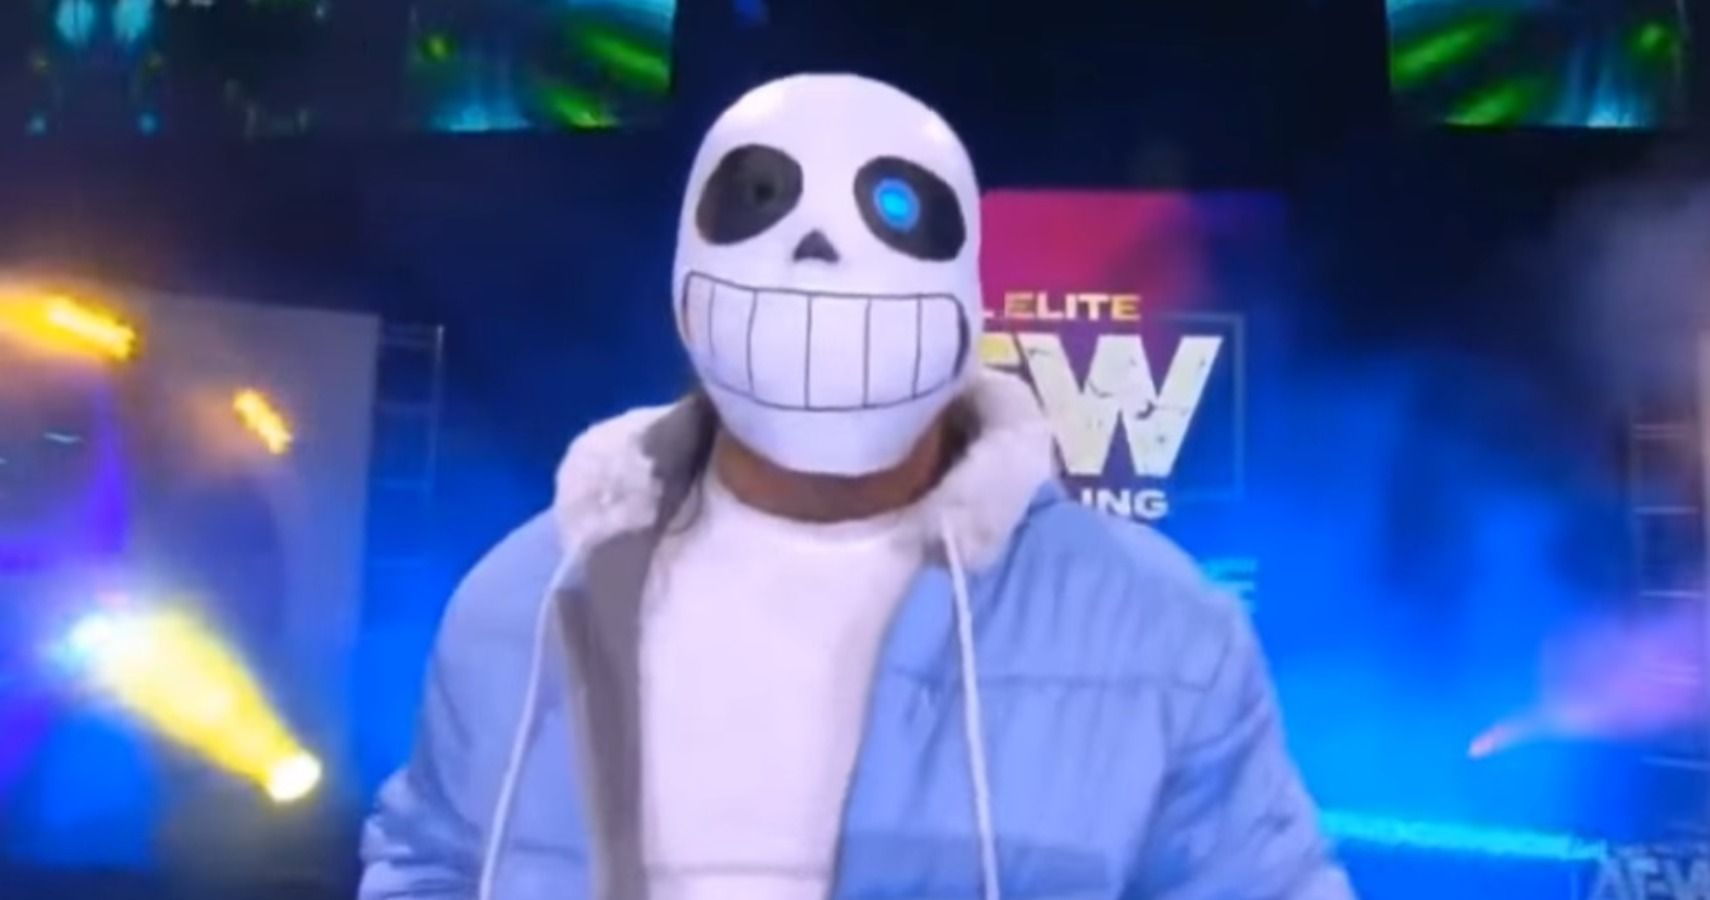 Kenny Omega Showed Up To An Aew Match Dressed Like Sans From Undertale